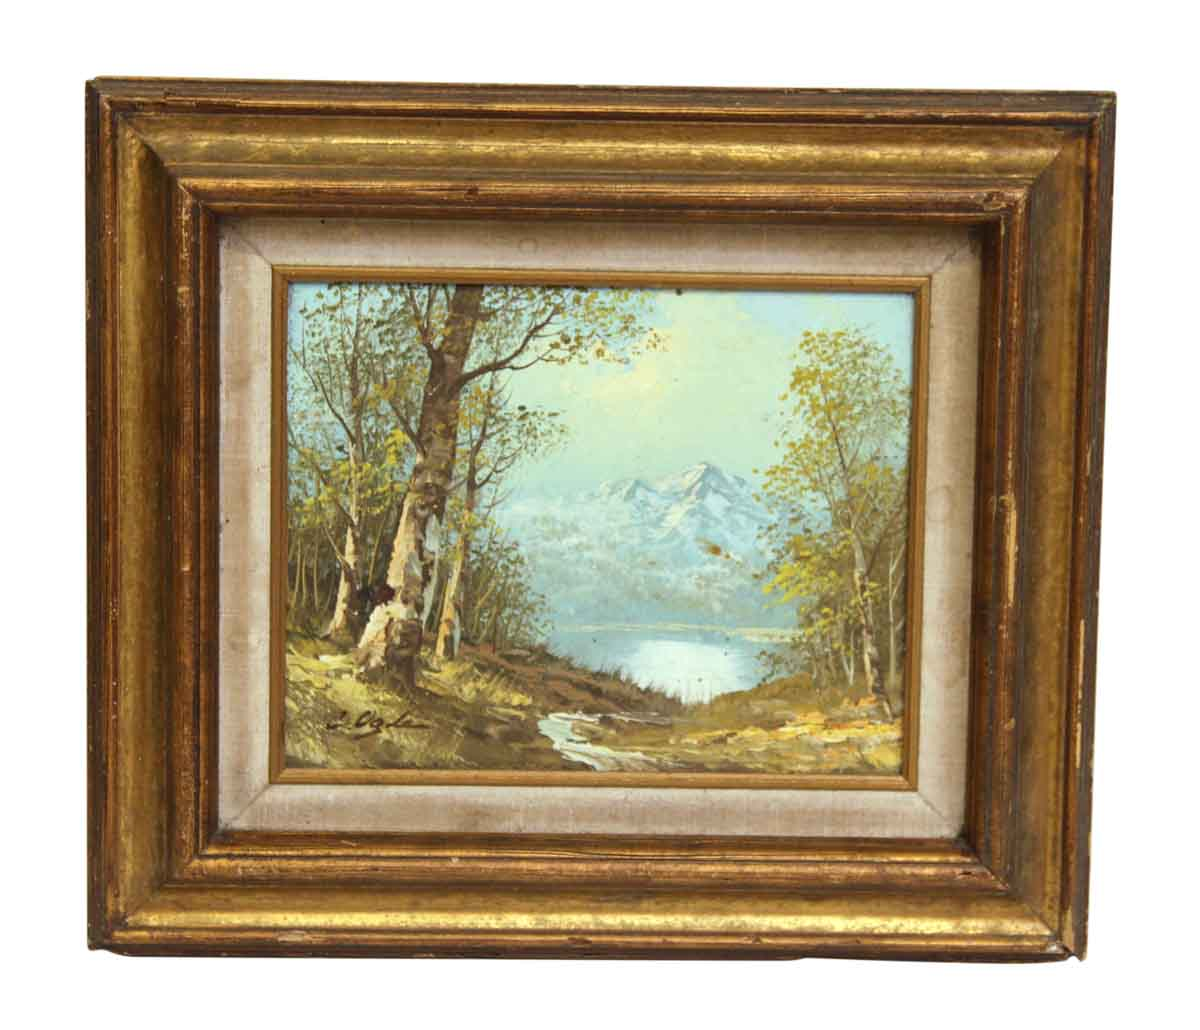 Gold Wash Wood Framed Scenic Painting Olde Good Things